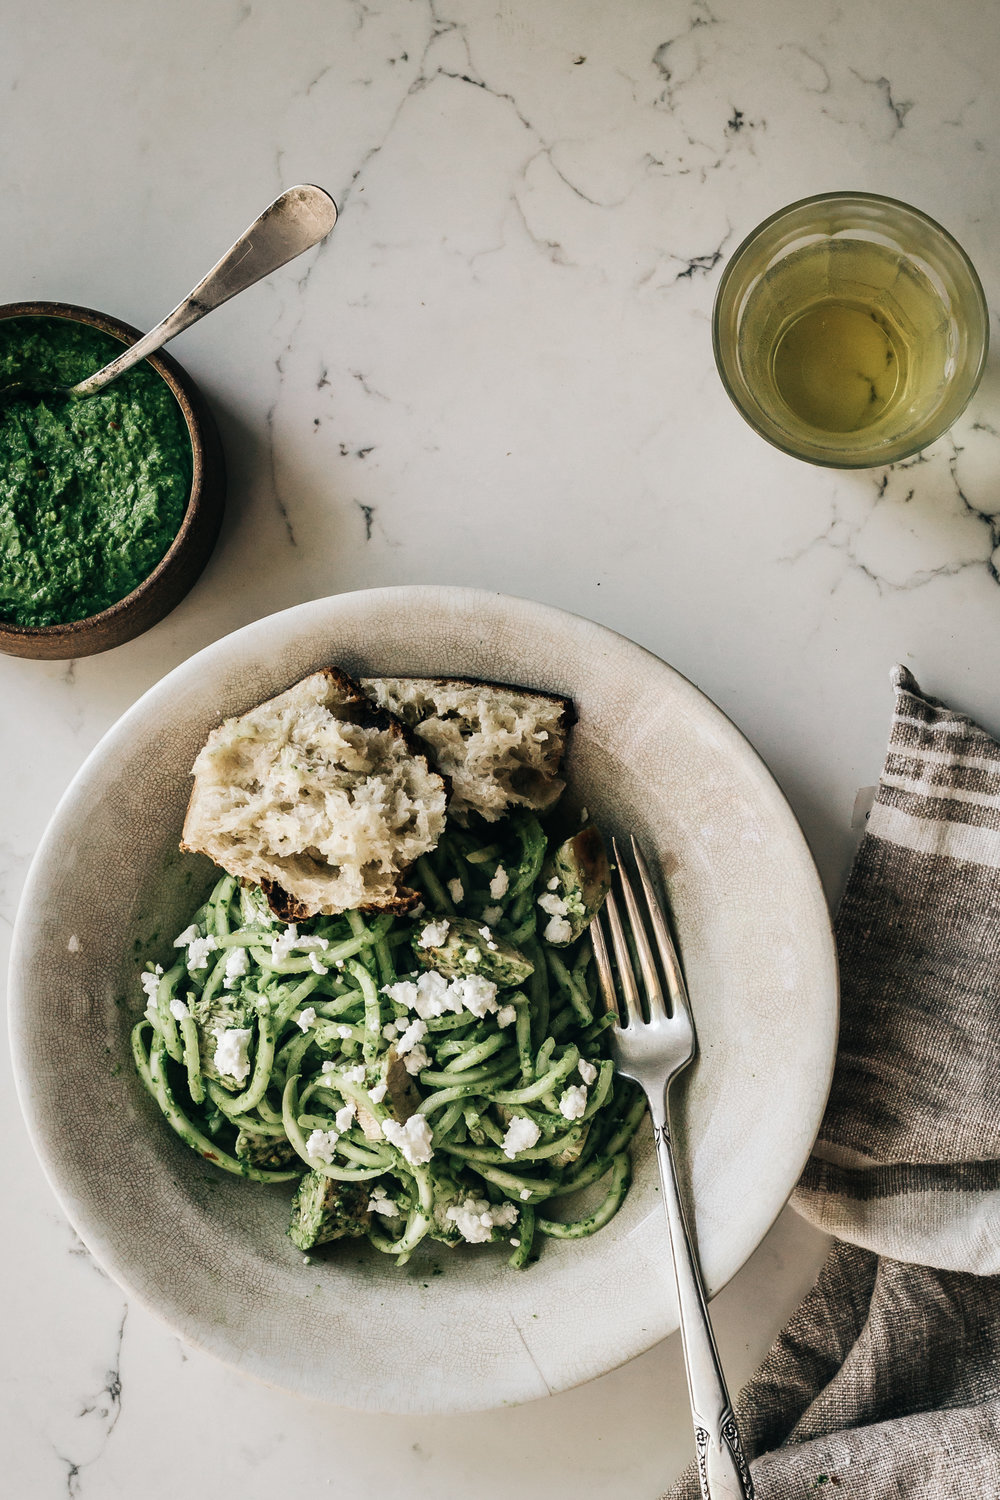 Turnip Noodle Bowls with Grilled Chicken and Turnip Greens Pesto